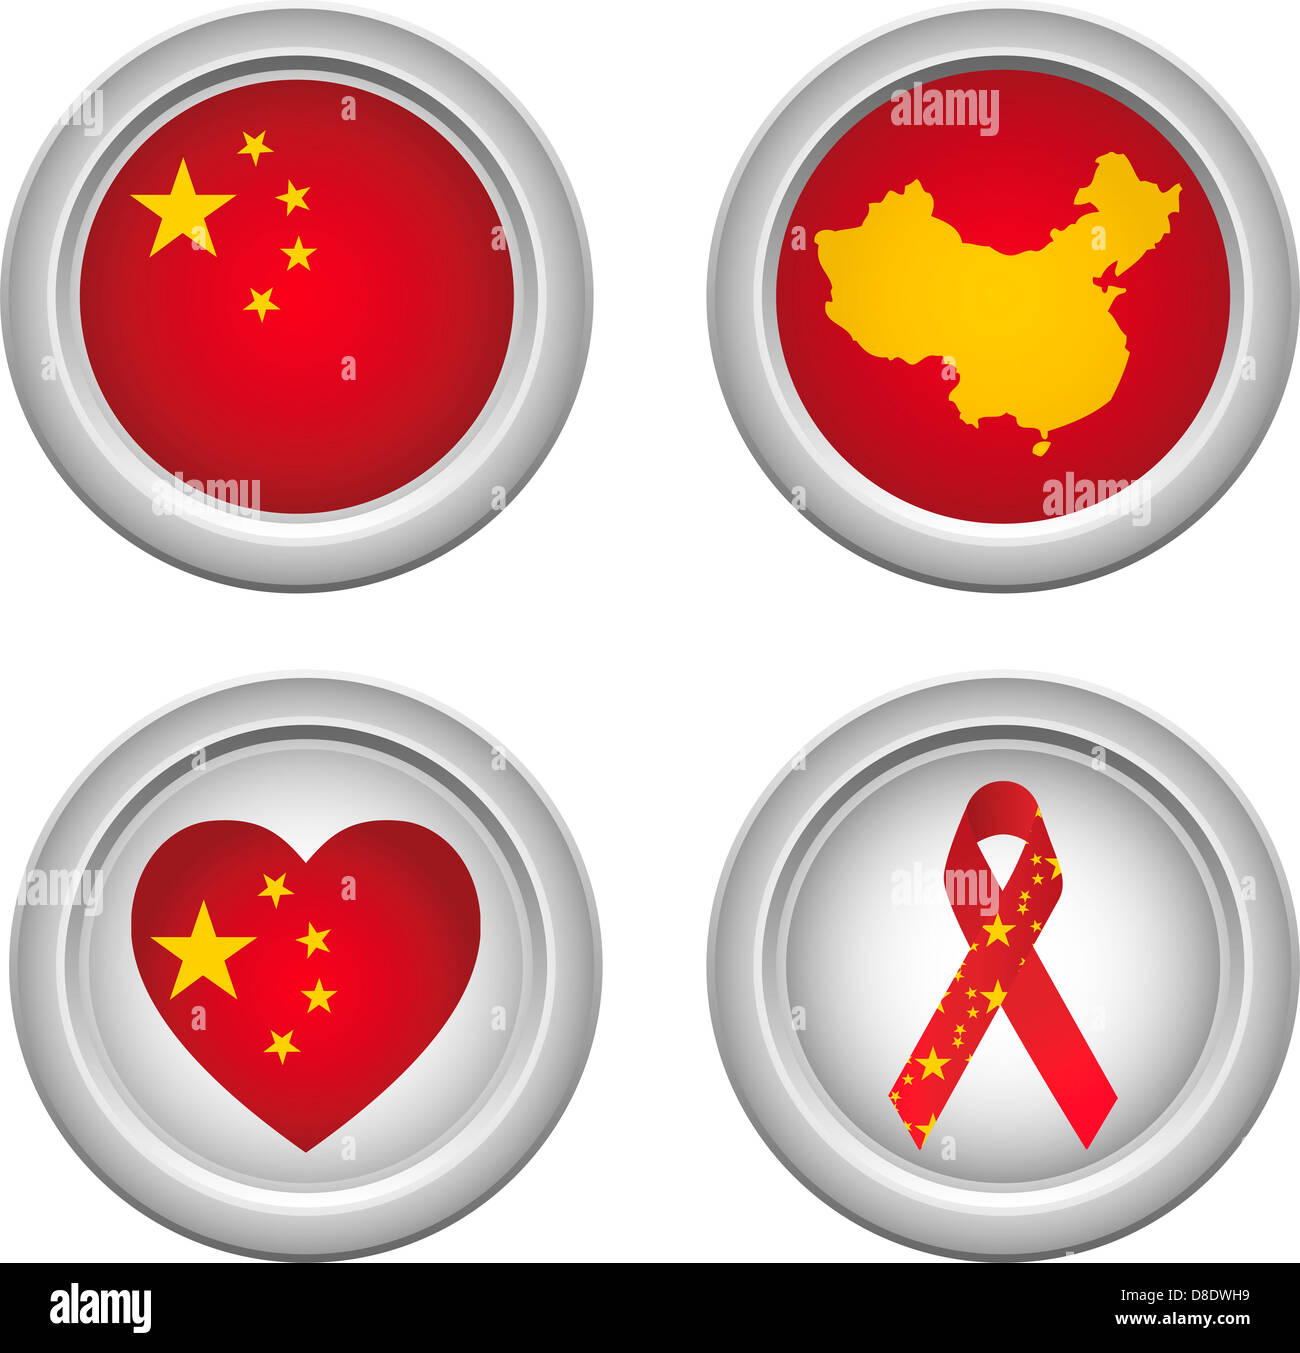 Chinese Buttons with ribbon, heart, map and flag - Stock Image